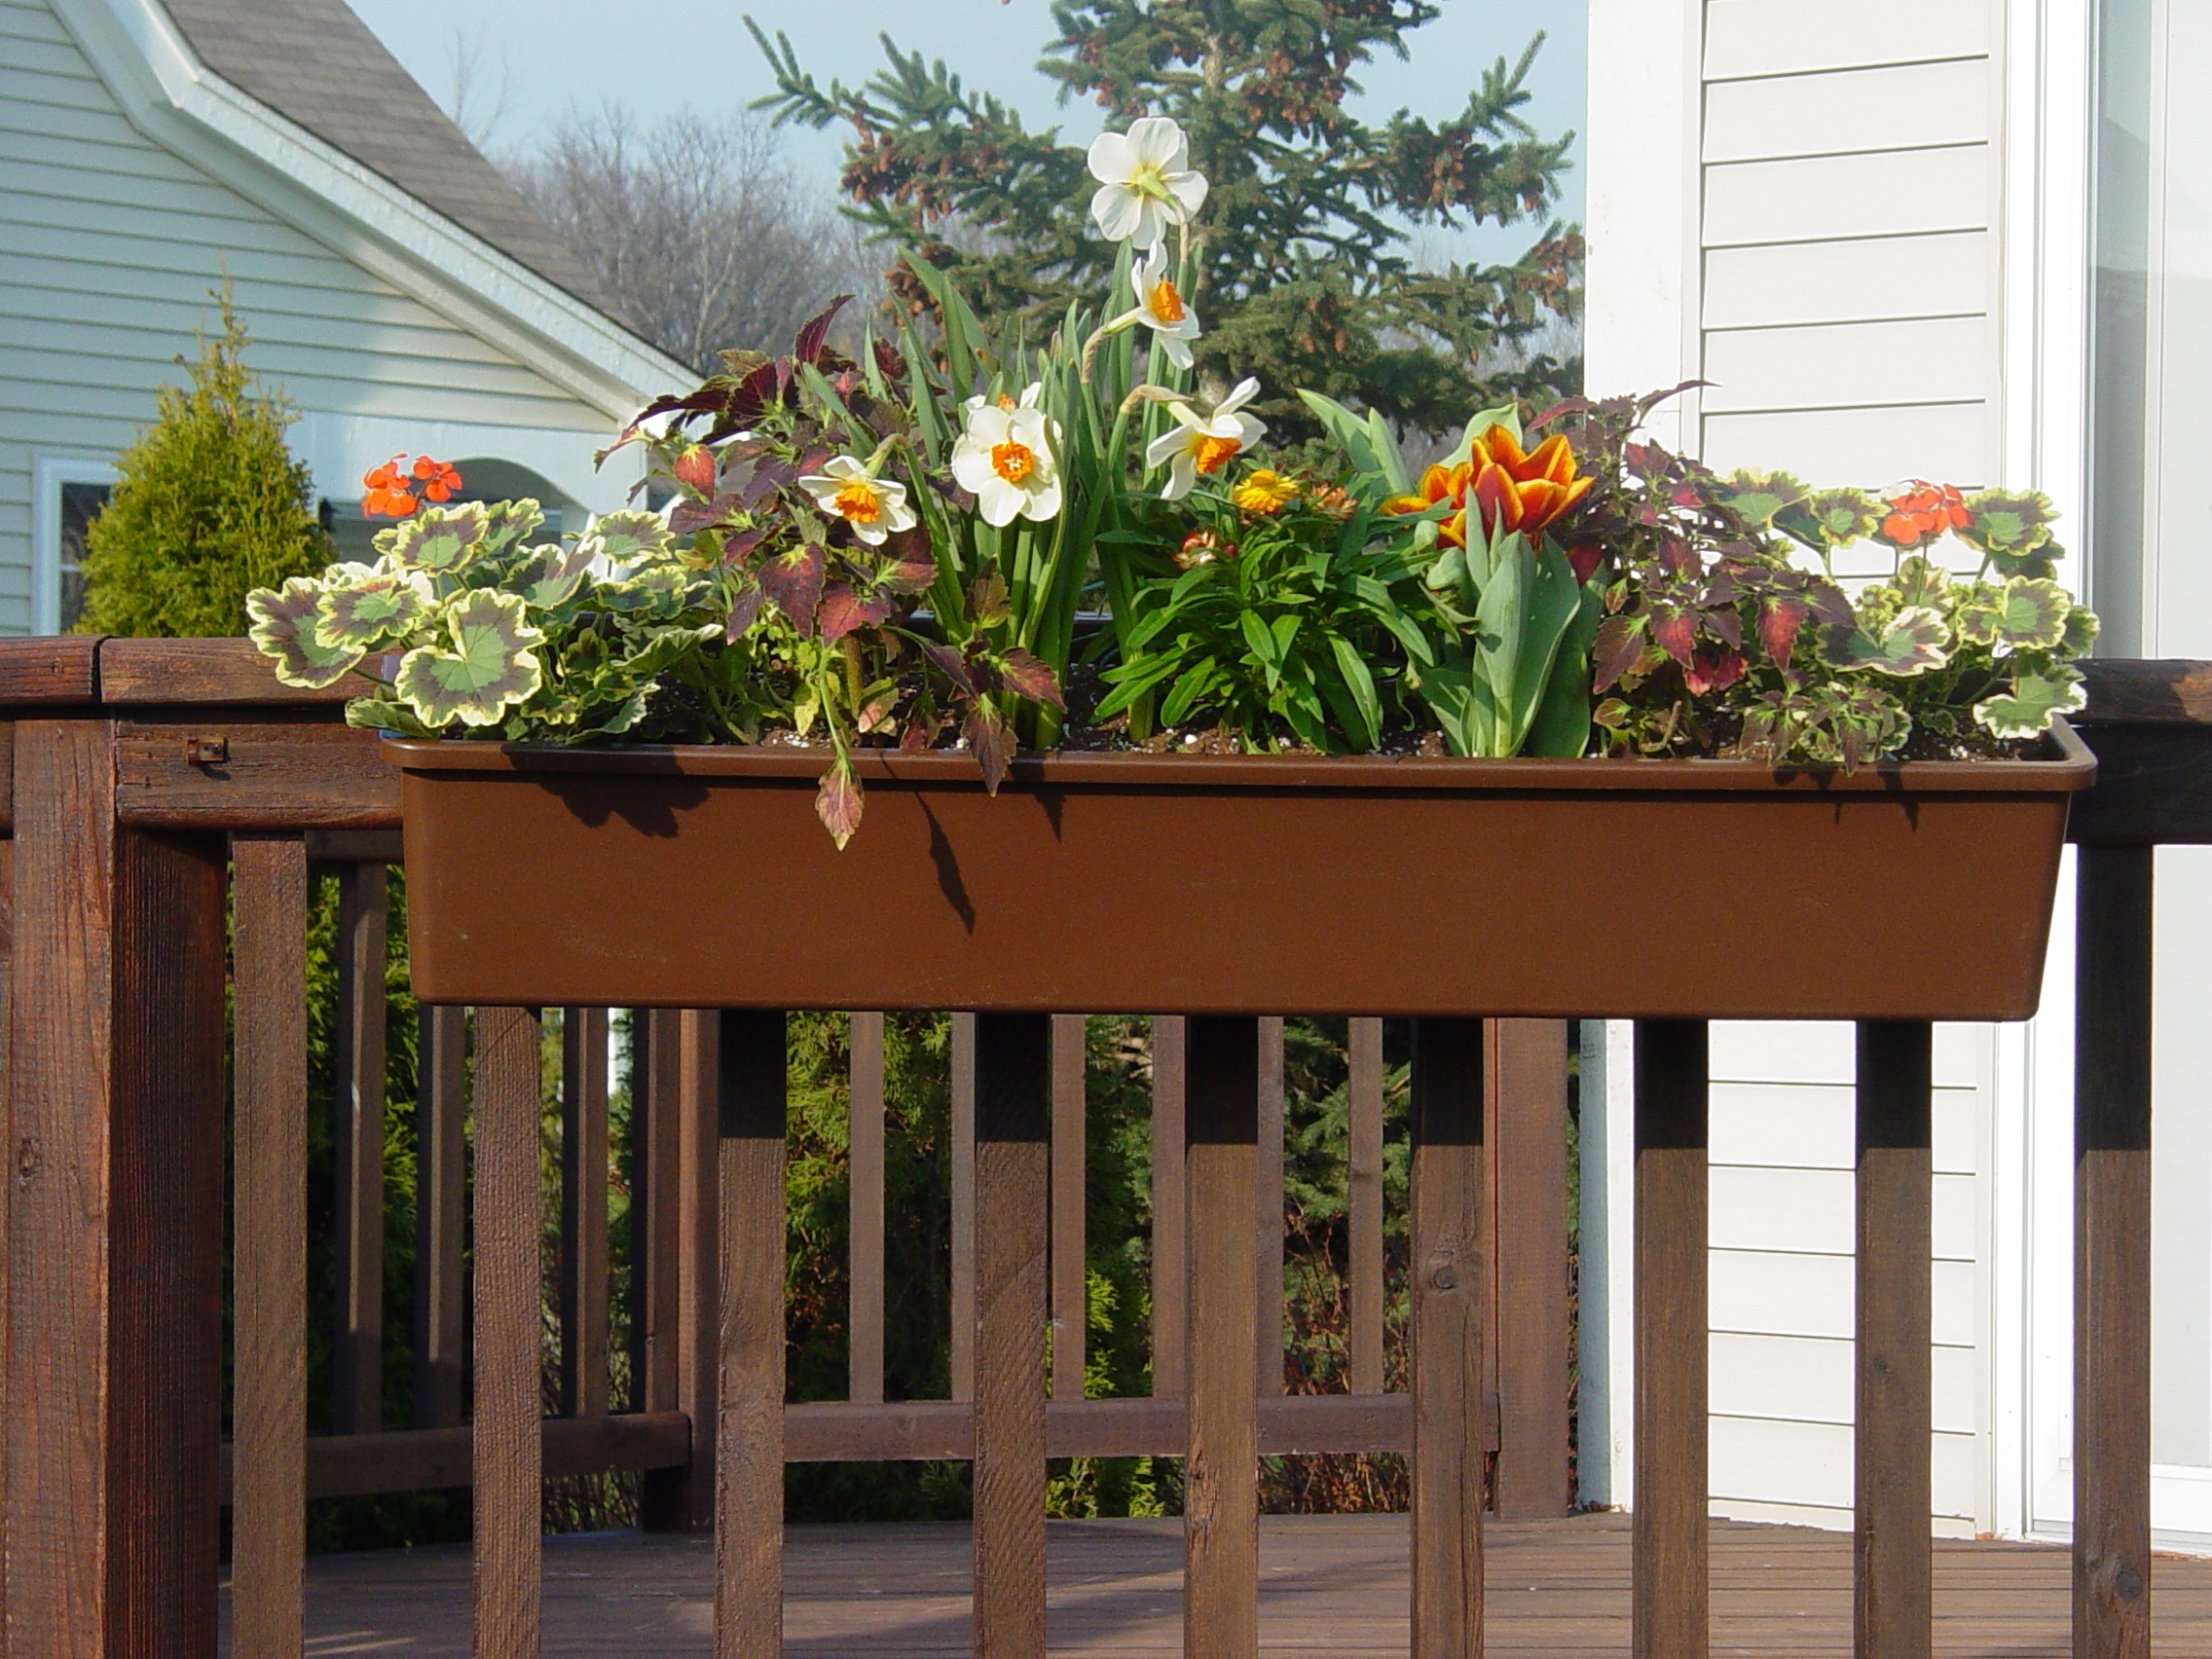 Install A Hanging Deck Box For Spring And Summer Deck